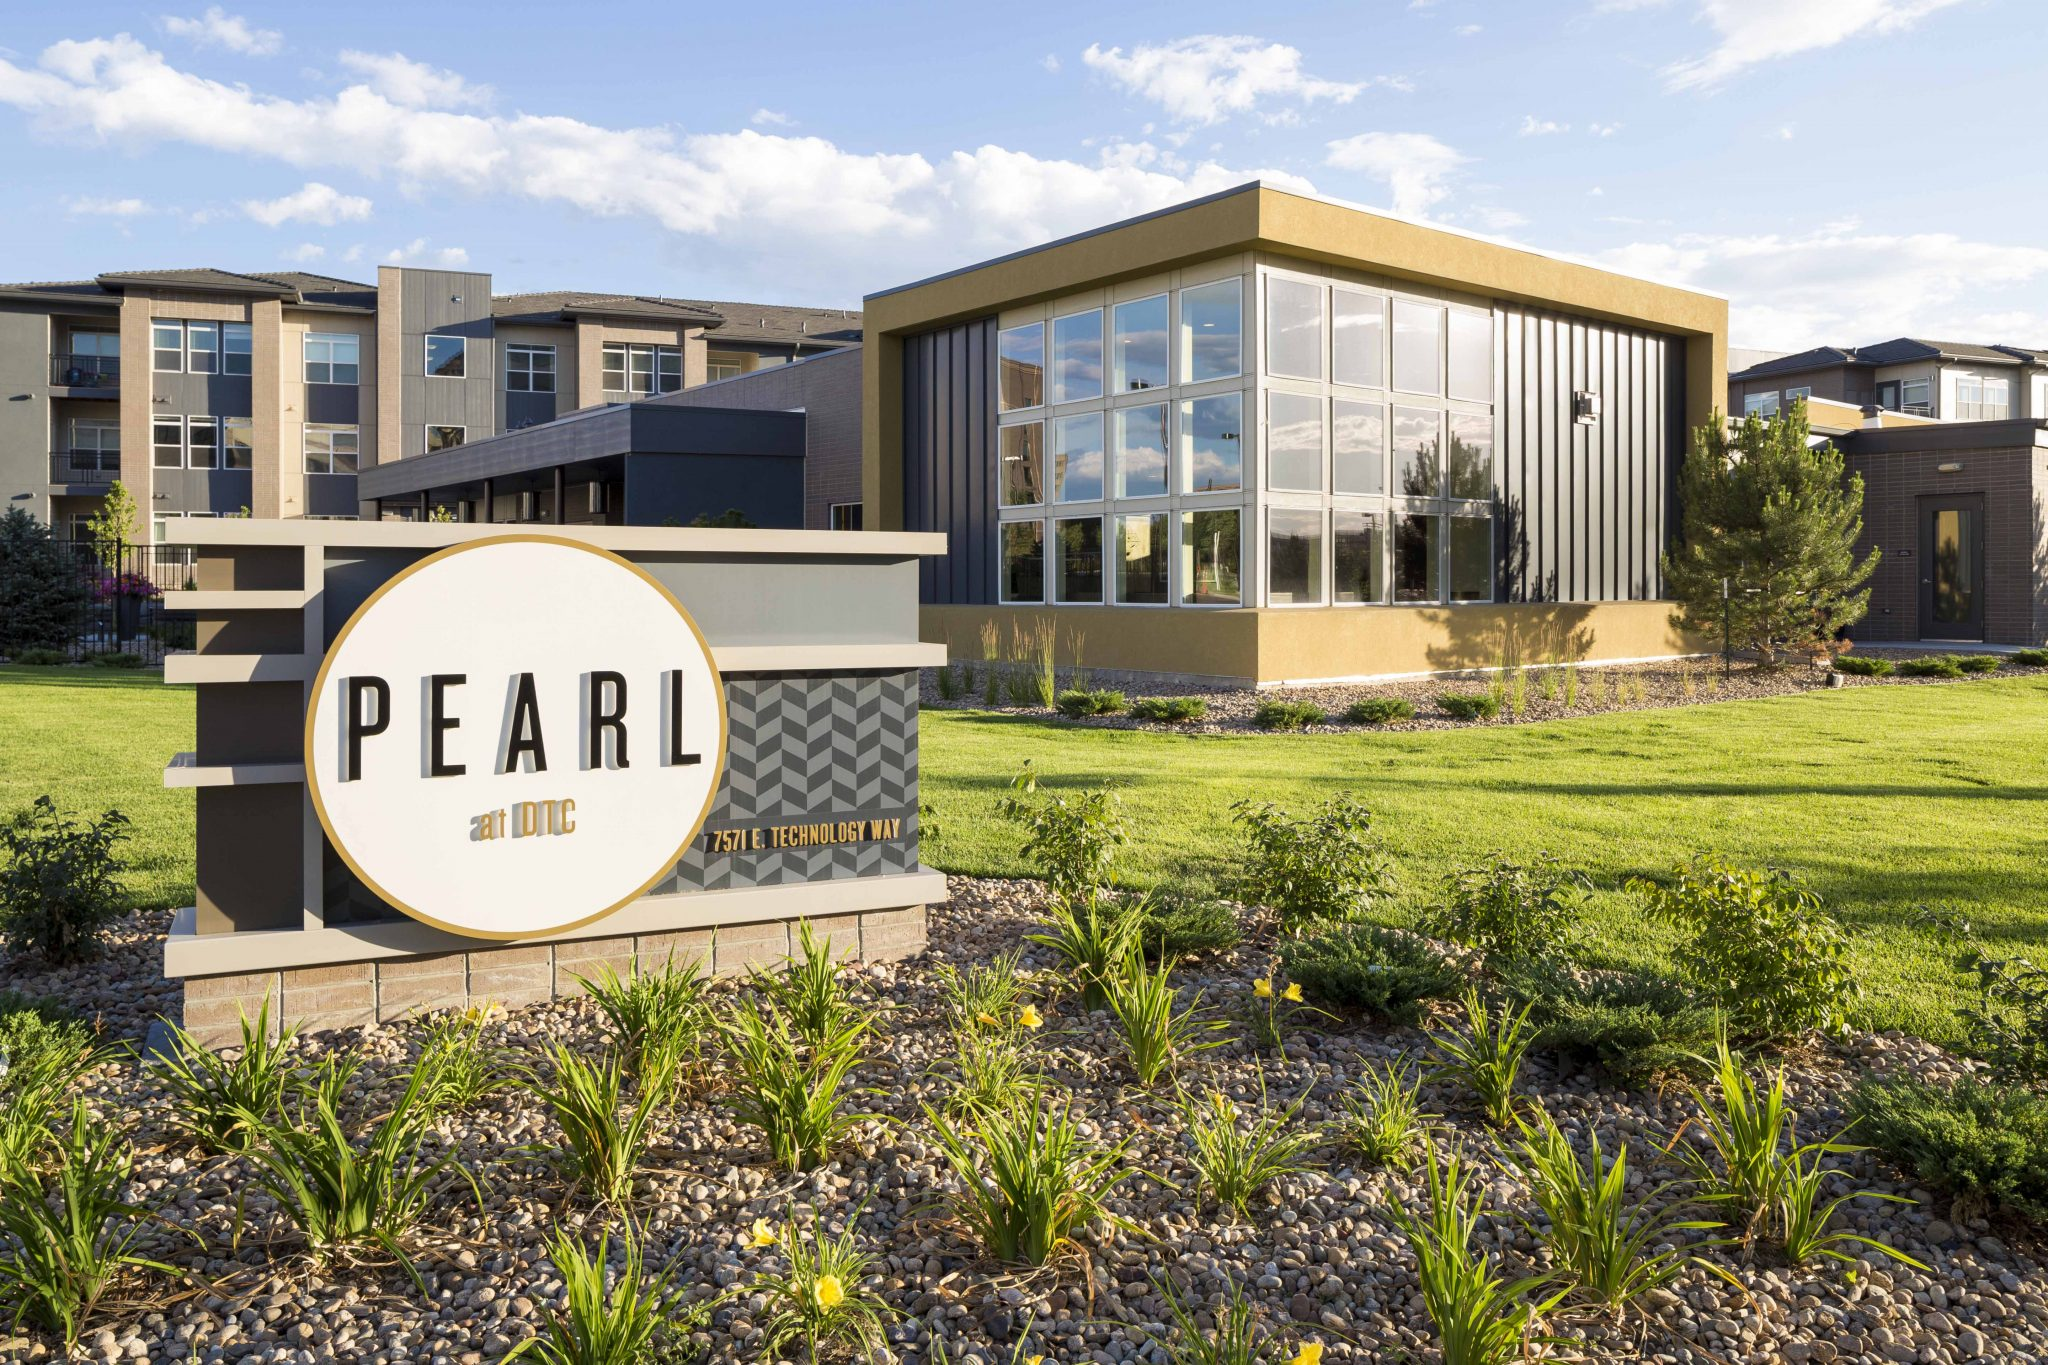 Exterior with sign for Pearl apartments with buildings in the background